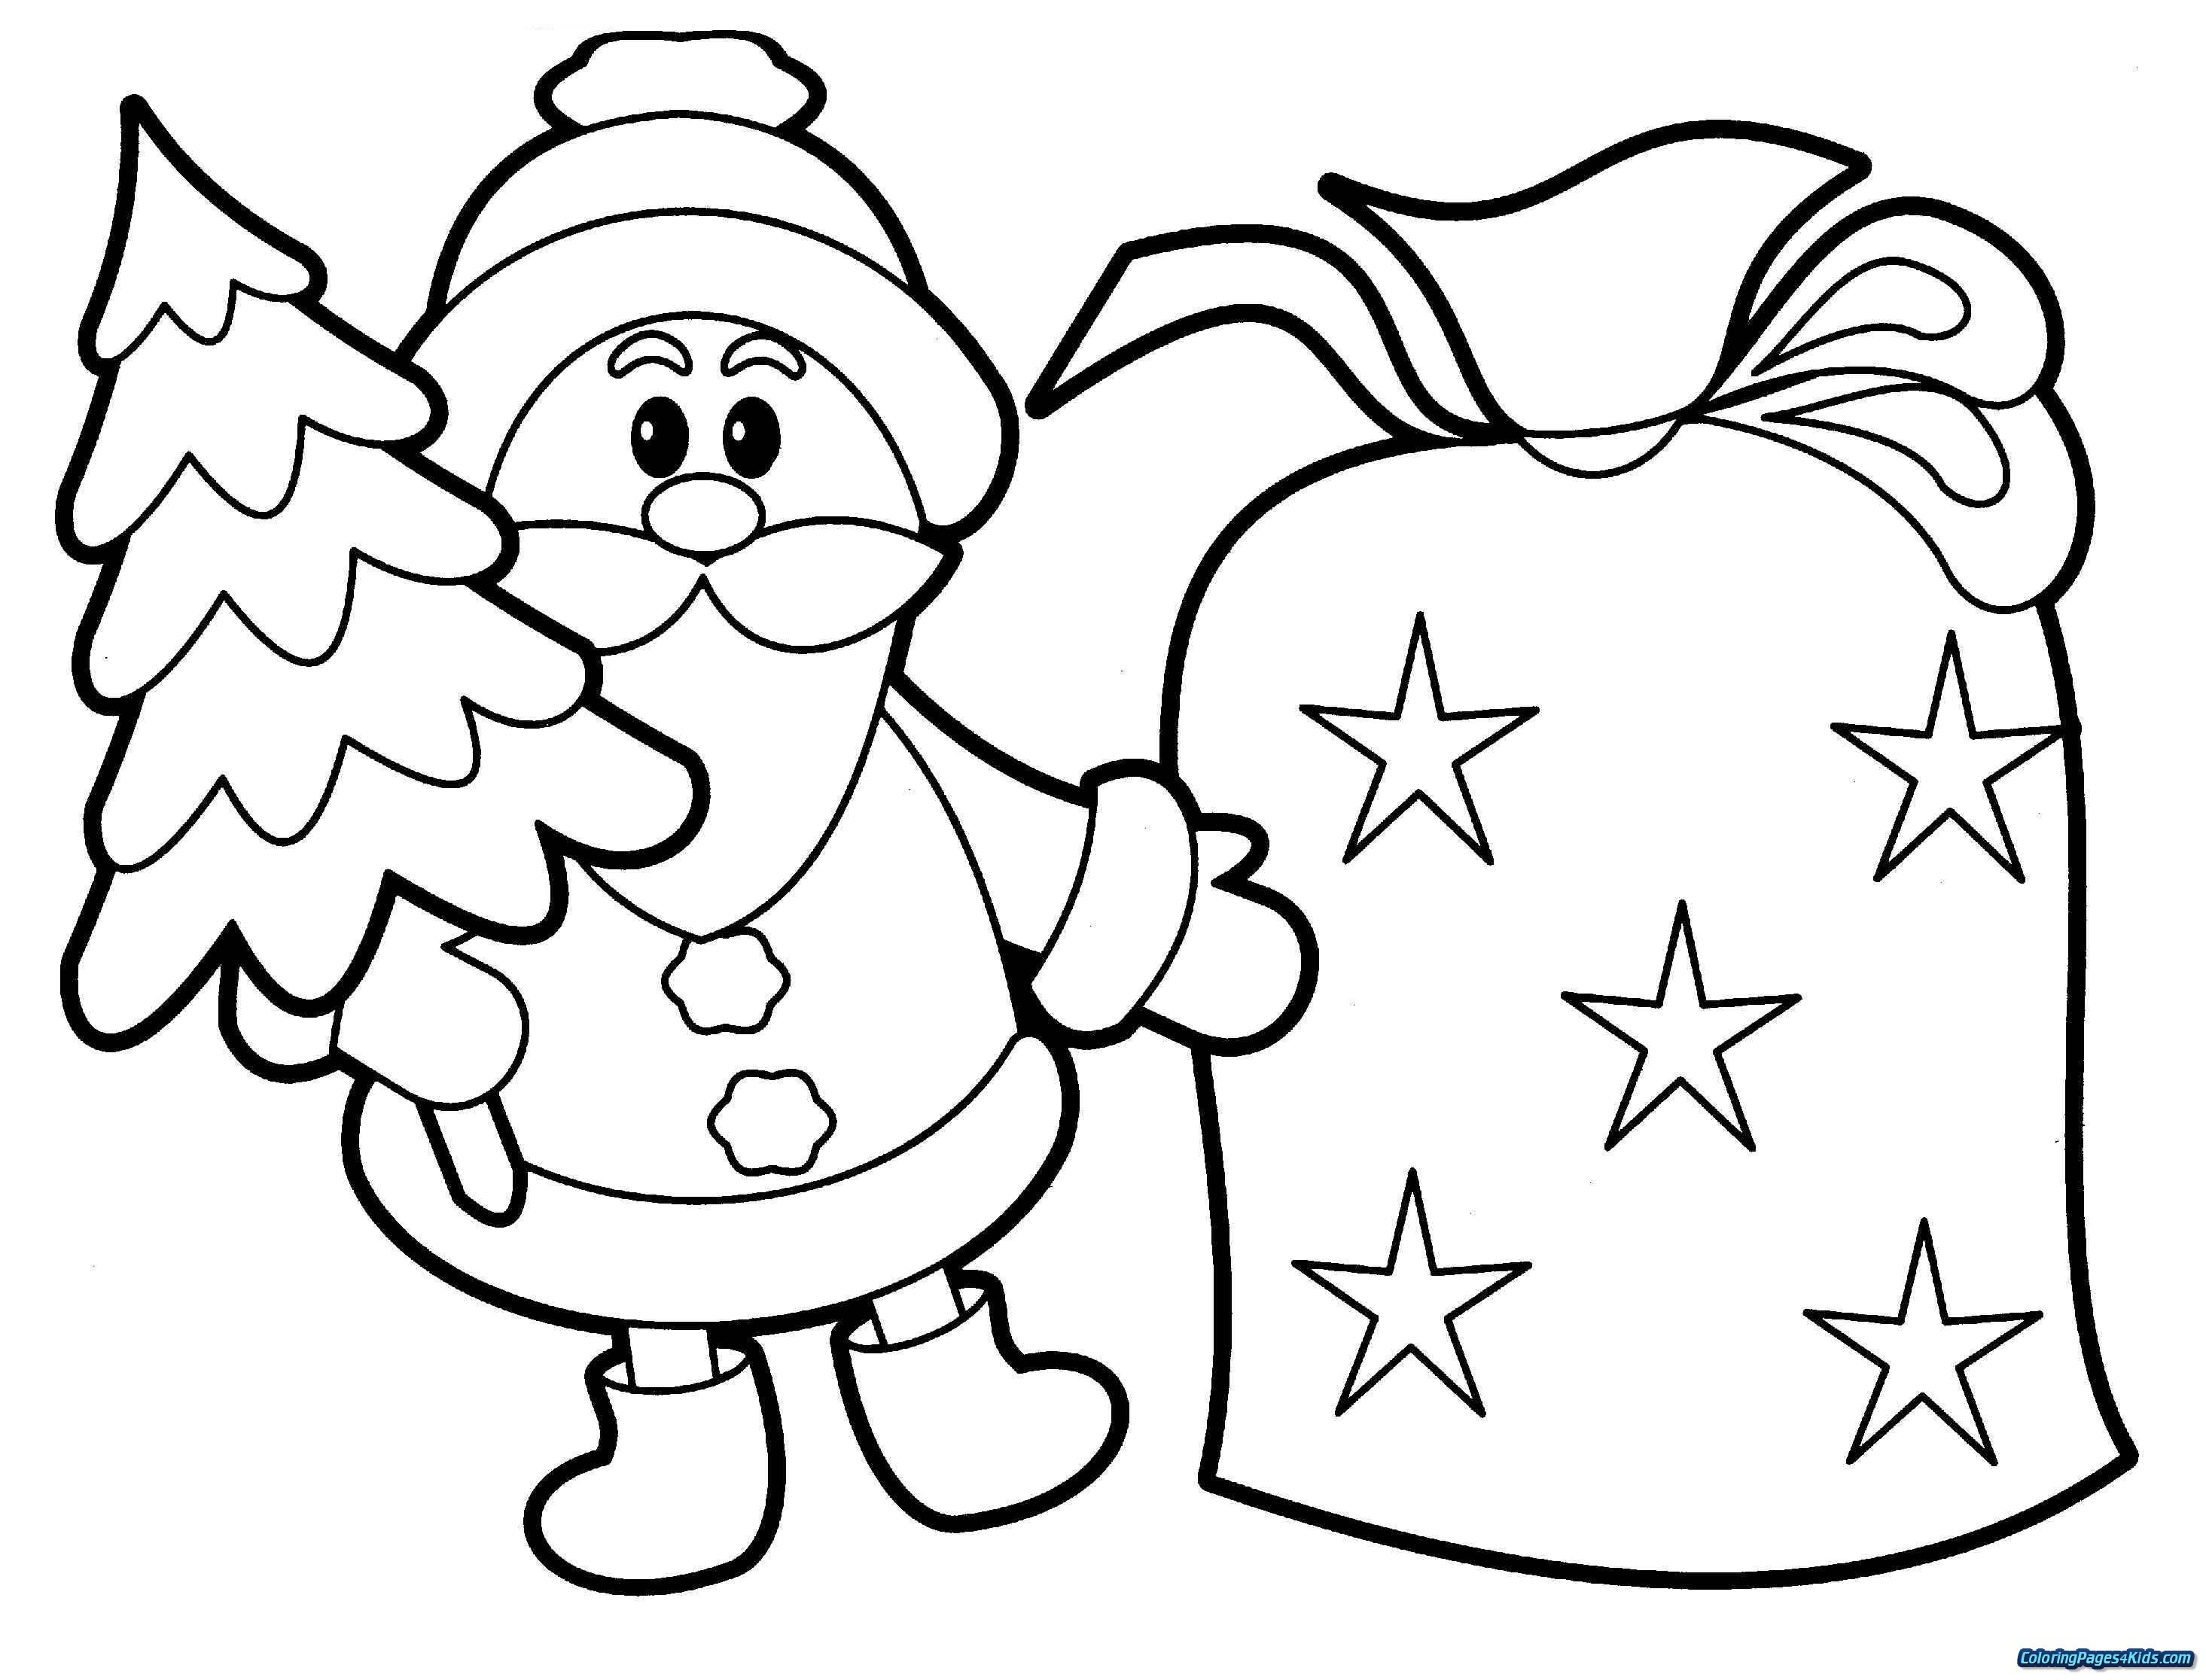 Xmas Coloring Pages To Print With Disney Refrence Printable Santa